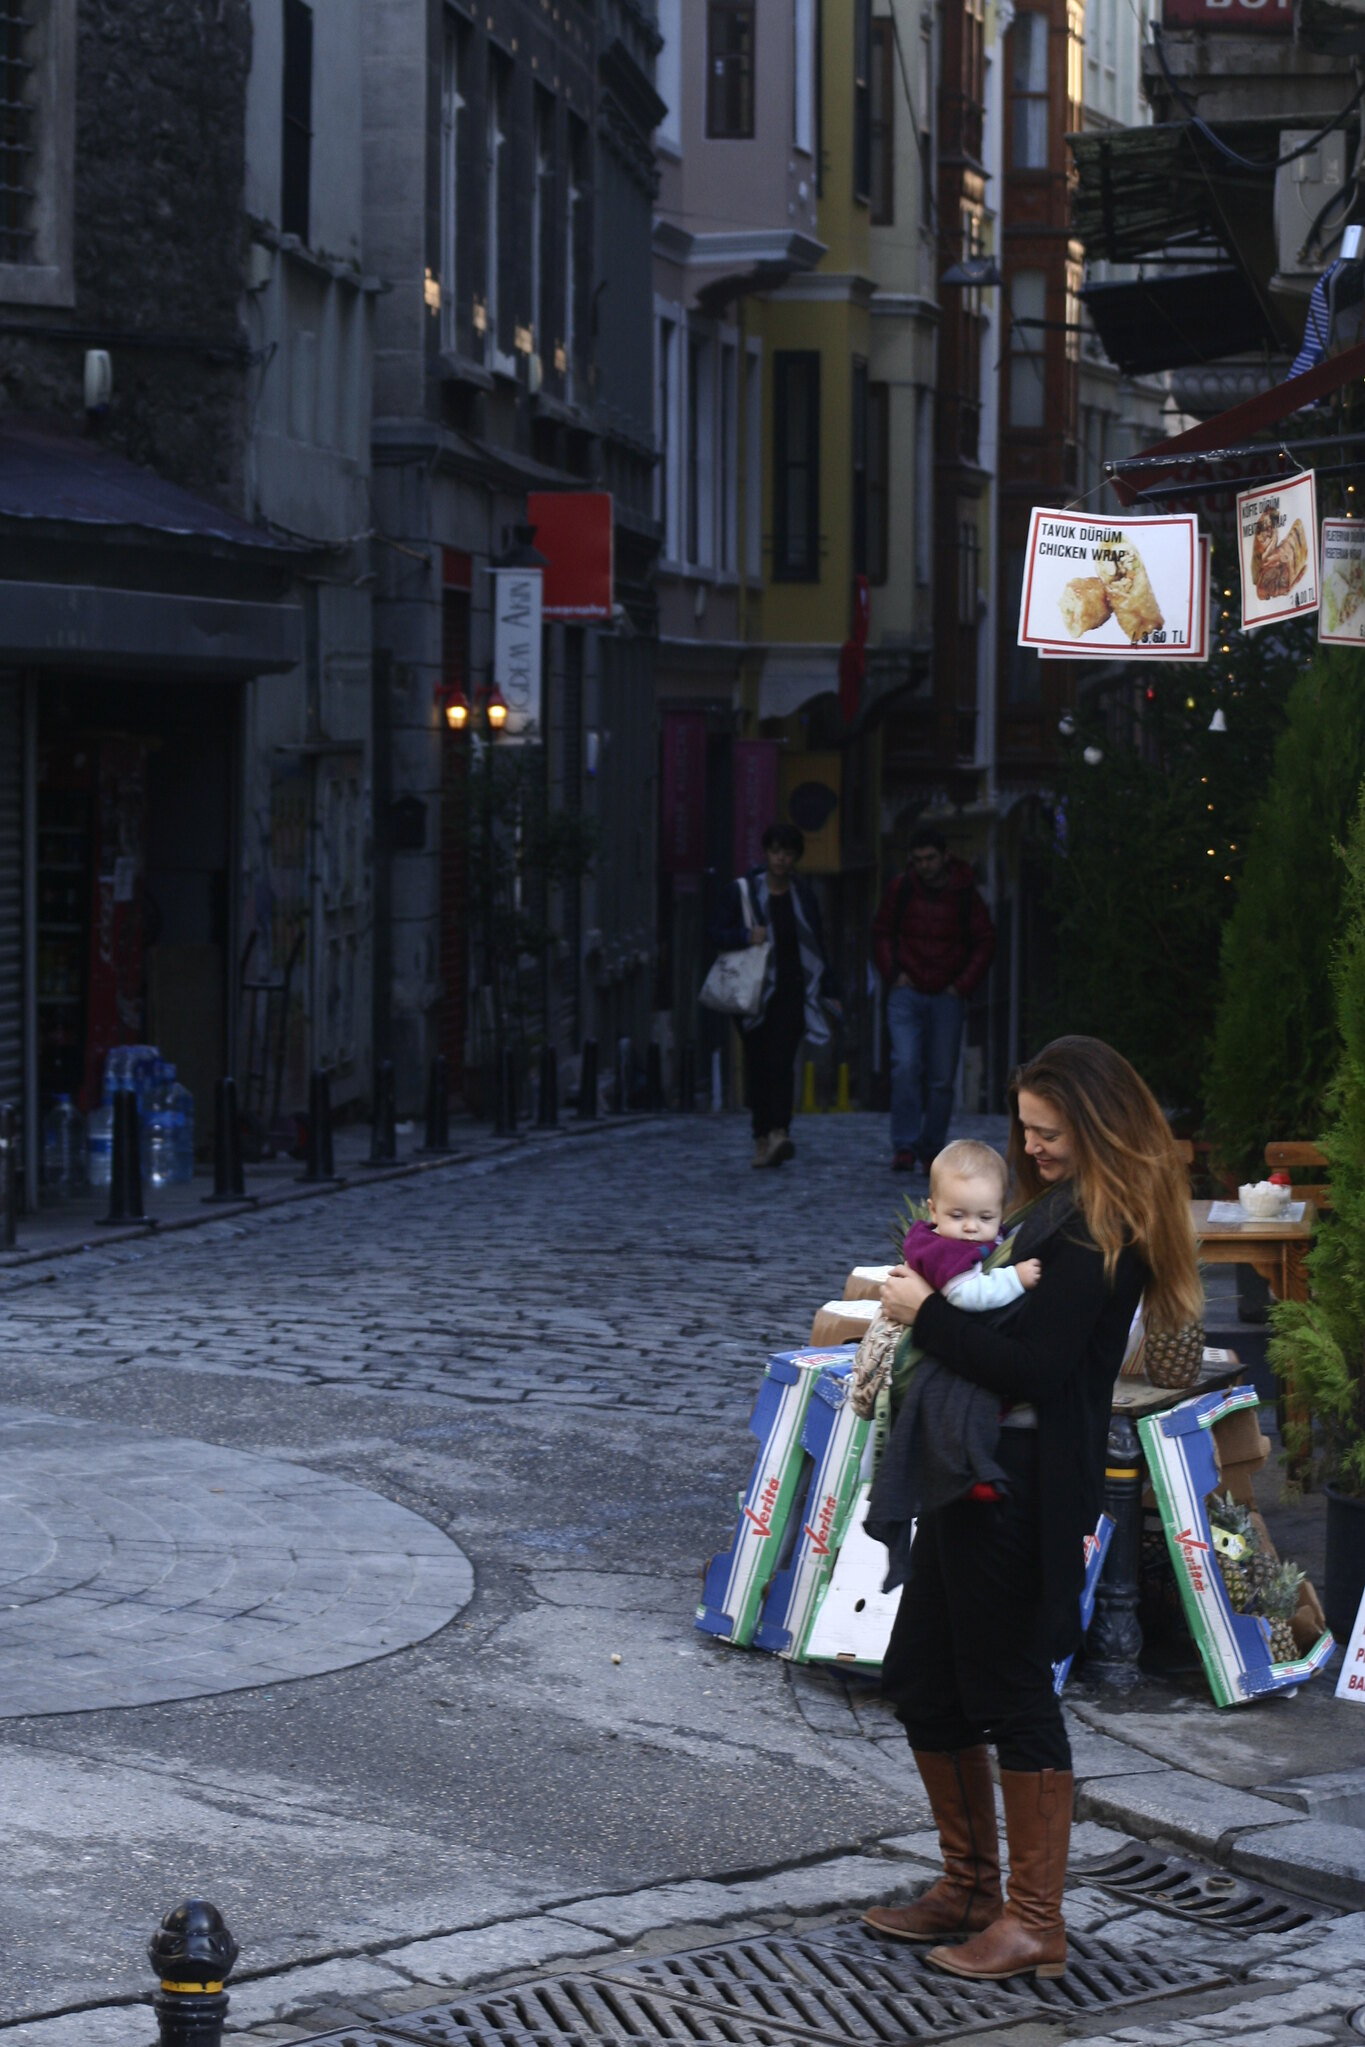 Julia and Neve on Galipdede Caddesi